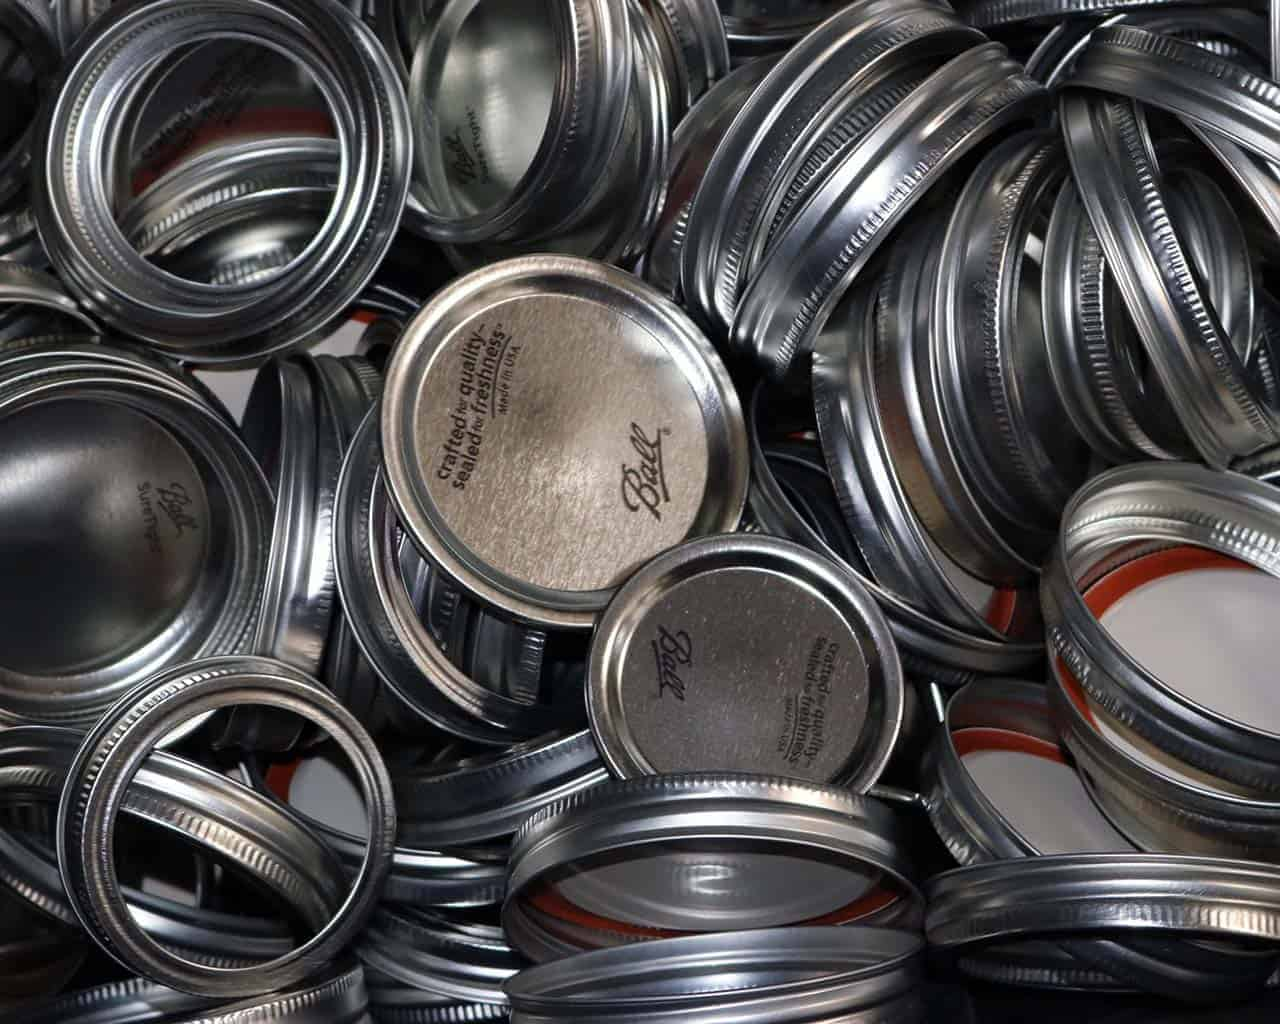 Mason Jar Lifestyle Lids And Bands Pulled From New Jars Bulk Bin